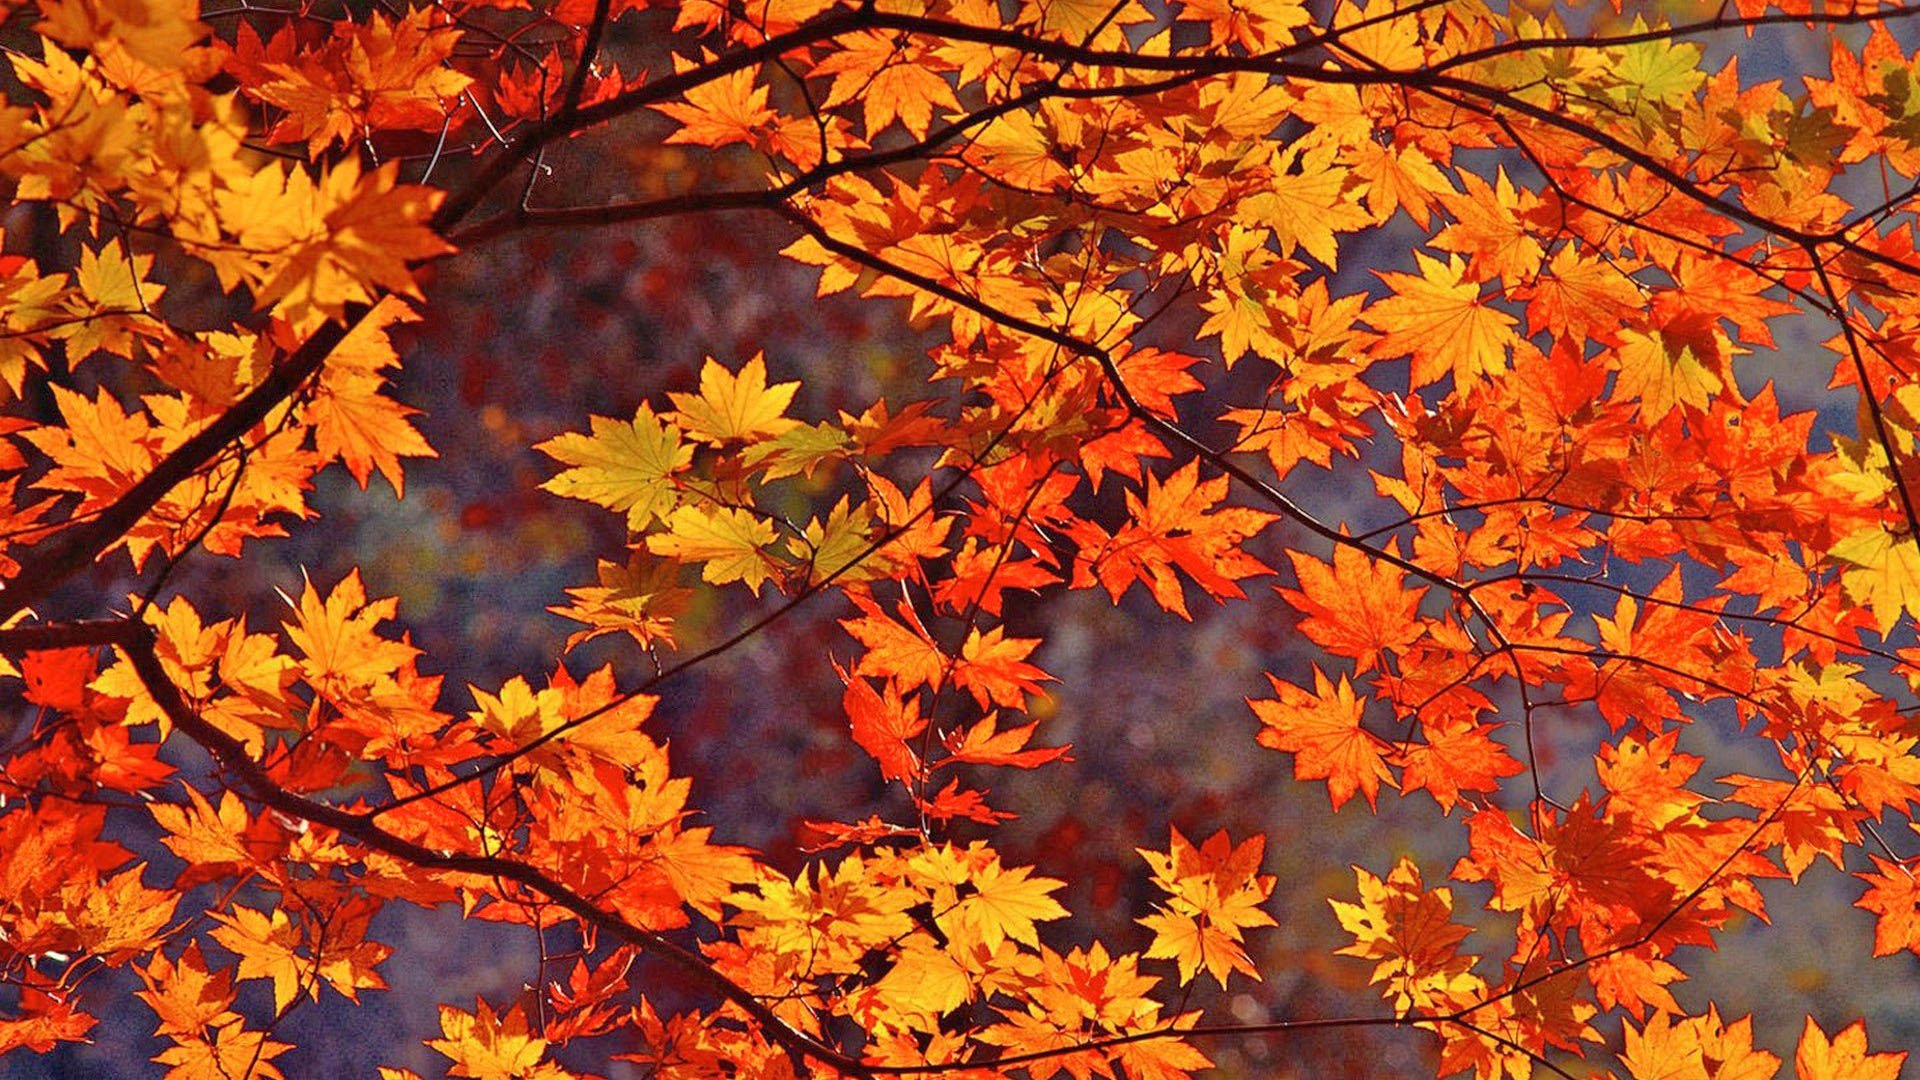 66 Fall Leaves Wallpaper On Wallpapersafari